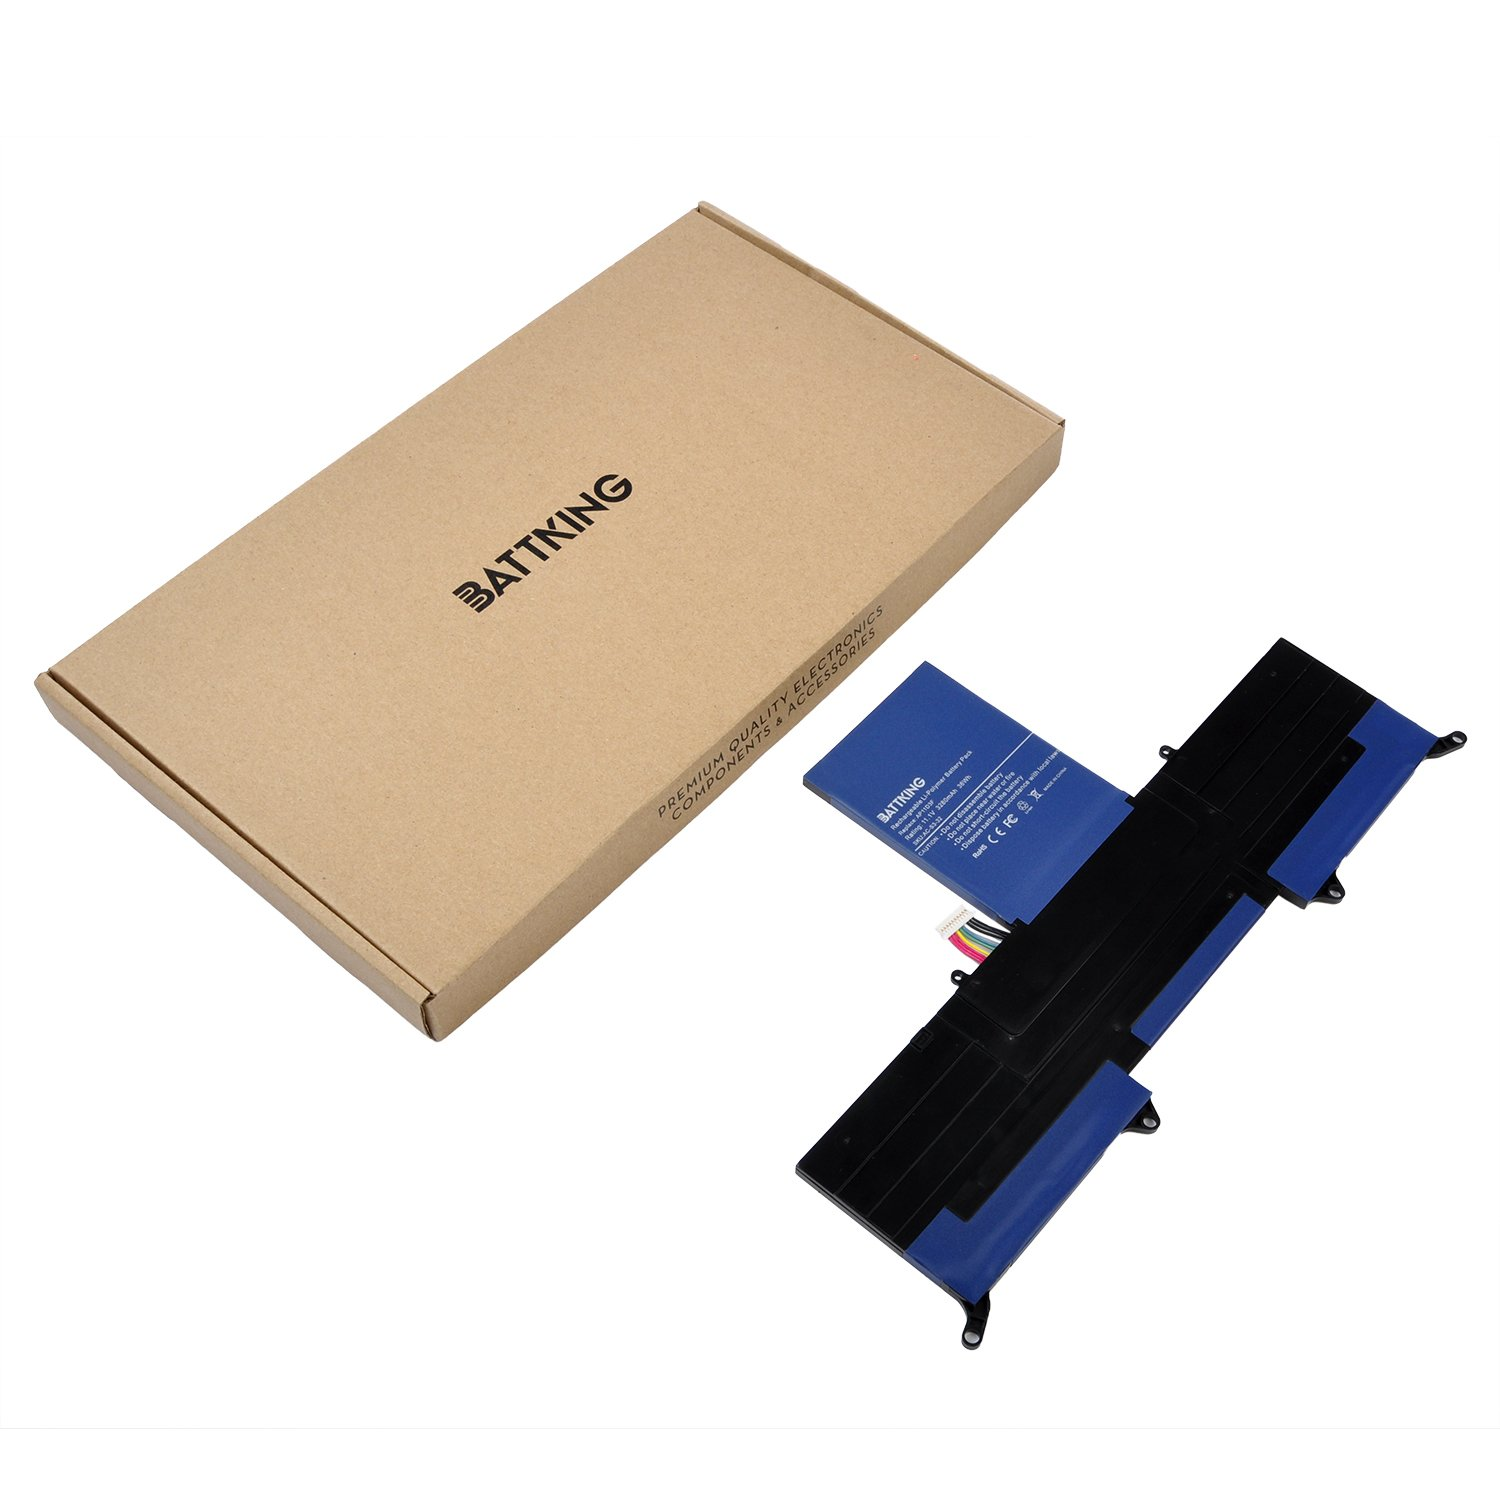 Amazon.com: BATTKING New AP11D3F AP11D4F Laptop Battery Compatible for Acer Aspire S3 Series S3-391 S3-951 MS2346, Fits MS2346 3ICP5/65/88 3ICP5/67/90 ...